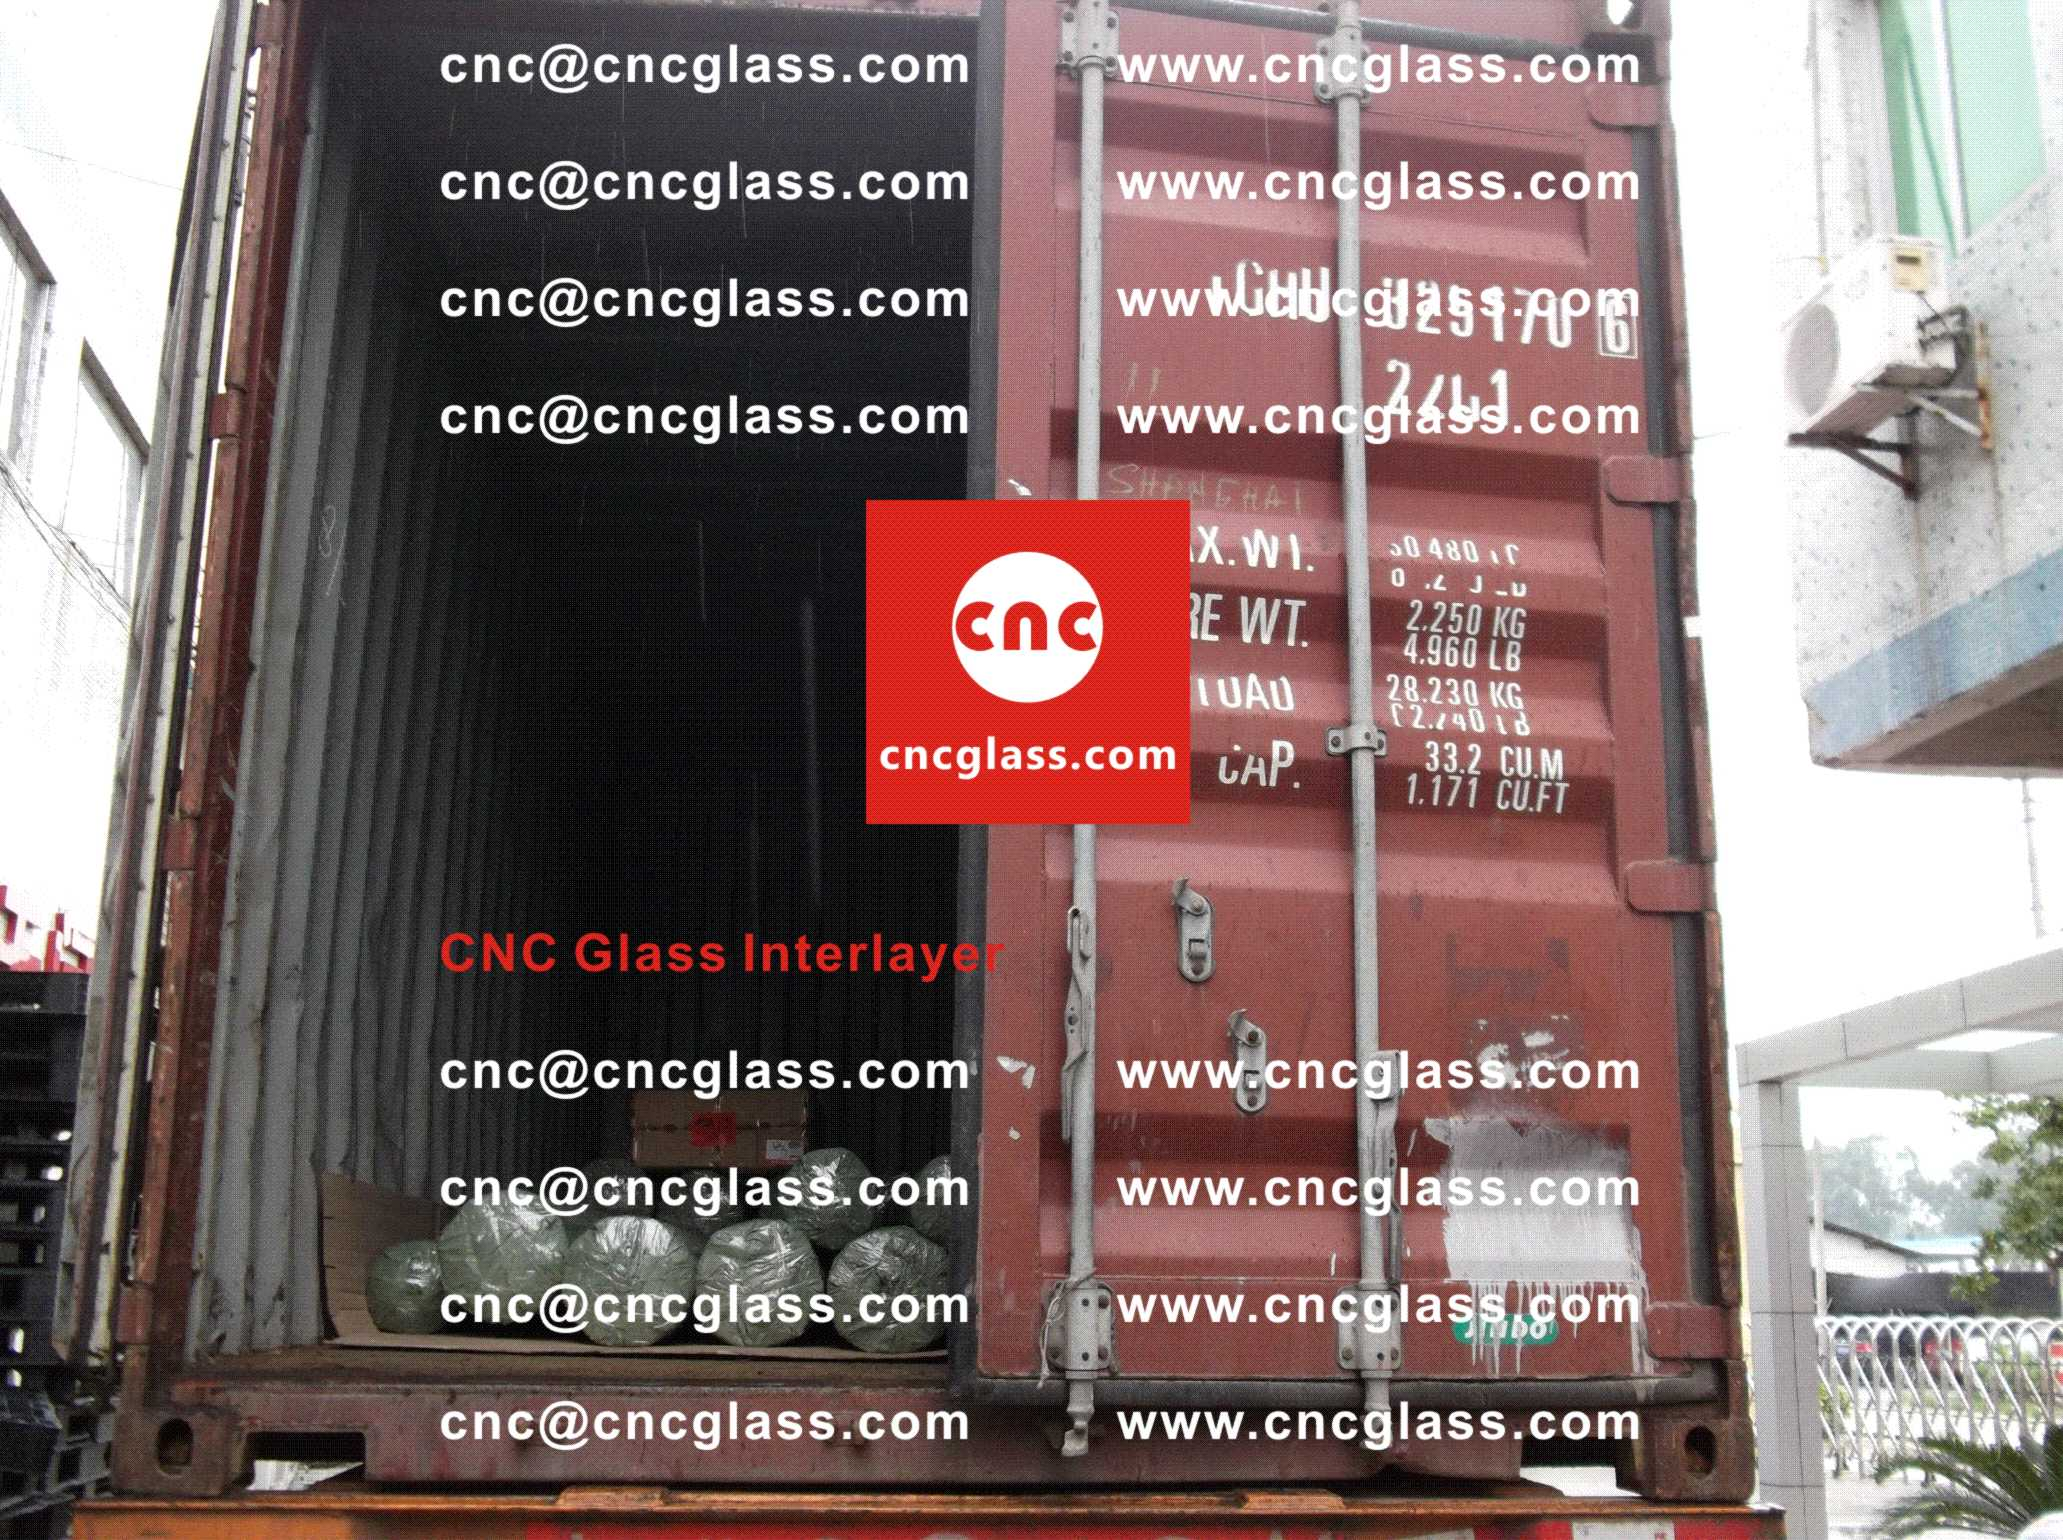 007 Packing Loading EVA Interlayer Film for Safety Laminated Glazing